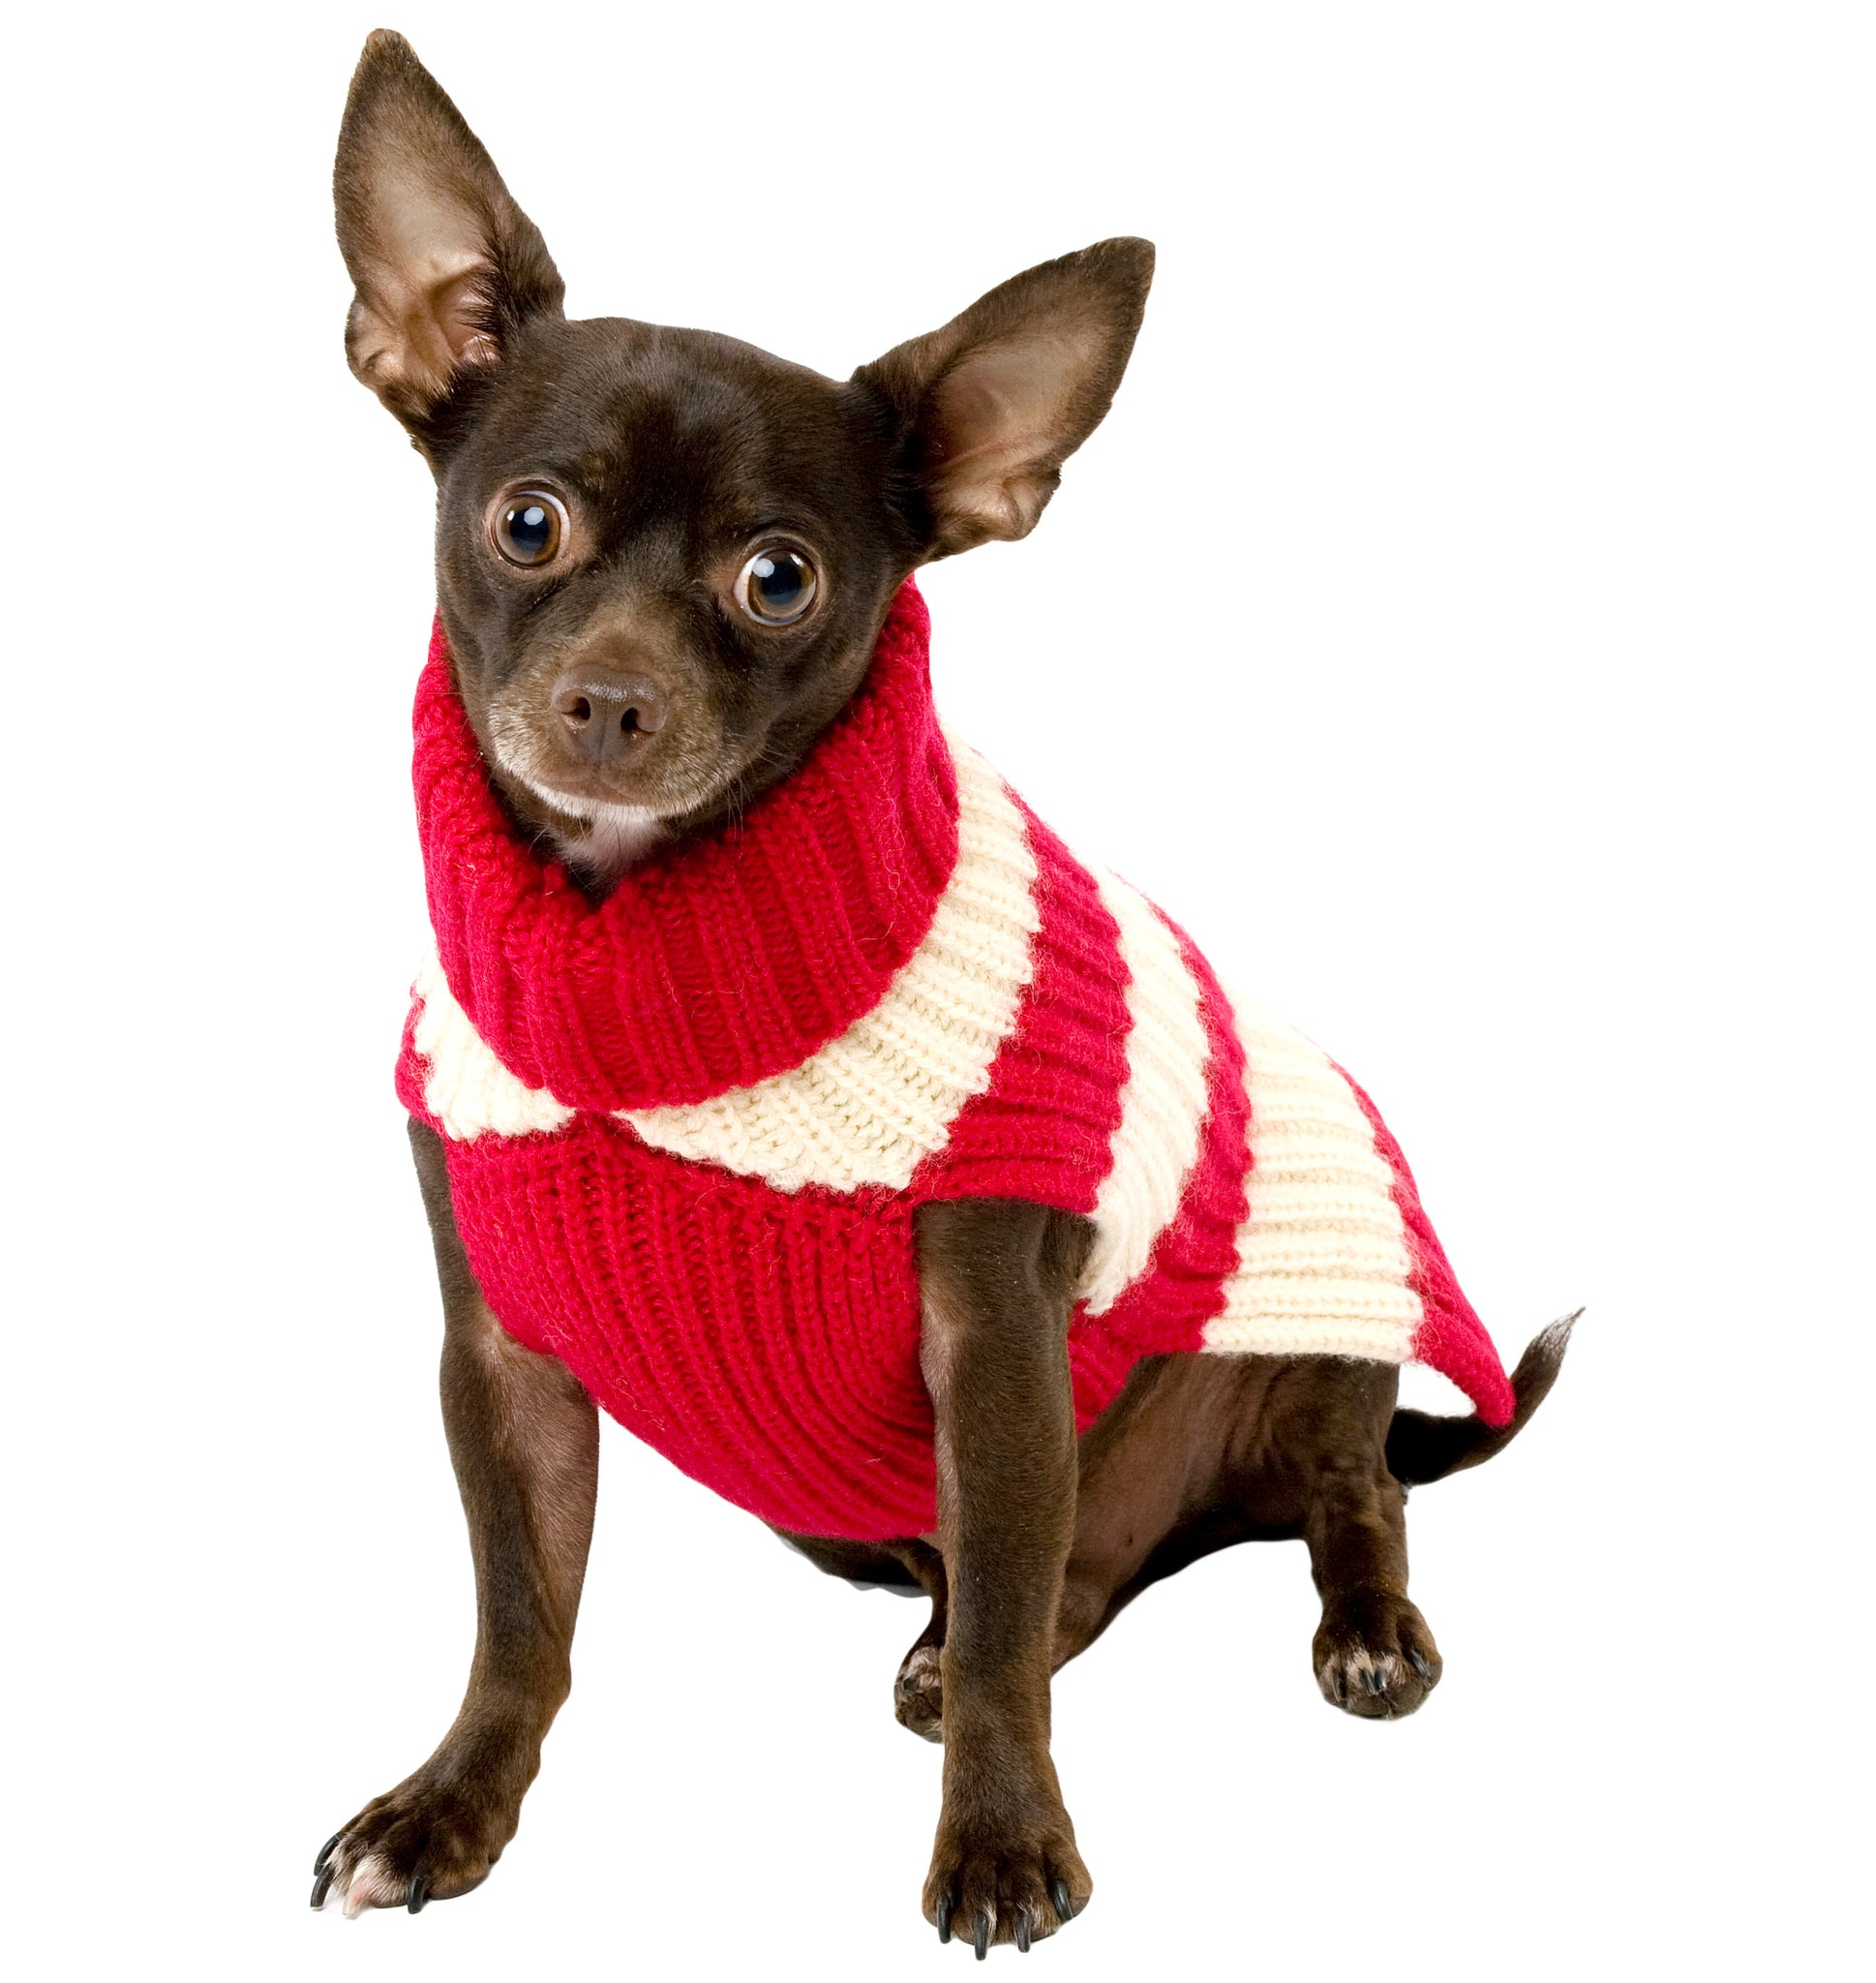 Wool Dog Sweater - Varsity Stripe, 3 Color Options